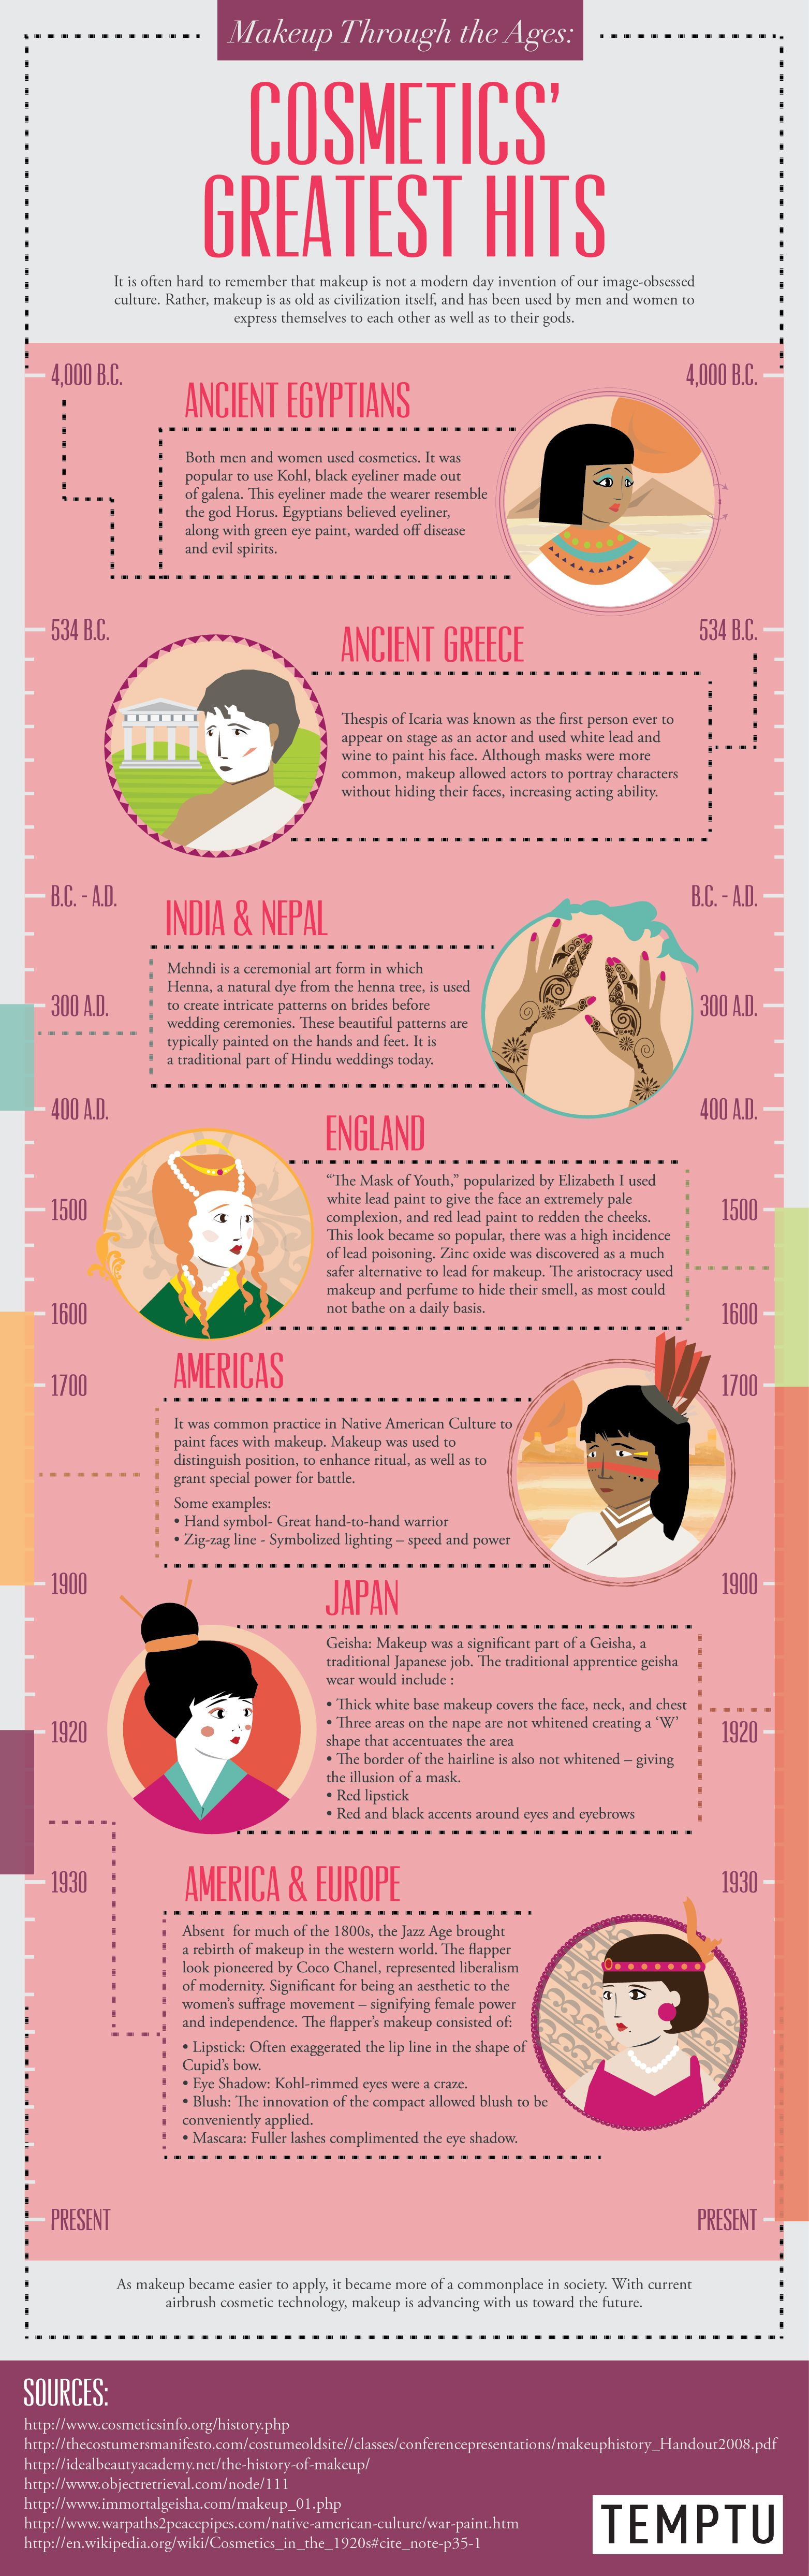 17 Best images about History of make up on Pinterest | The ...